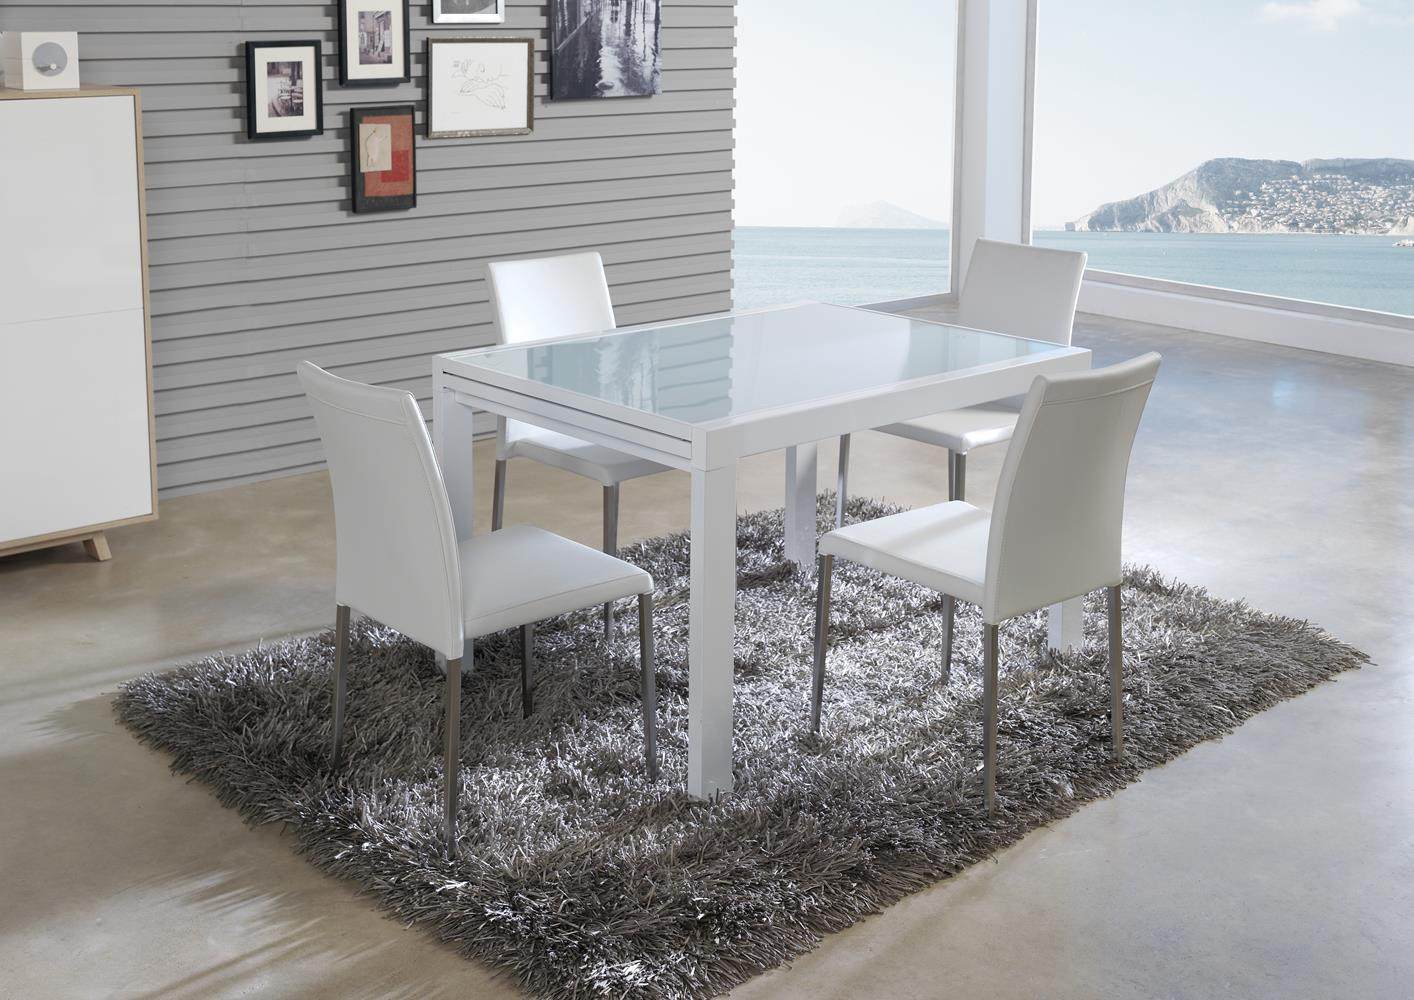 acheter votre table en verre avec allonge laqu e blanche chez simeuble. Black Bedroom Furniture Sets. Home Design Ideas